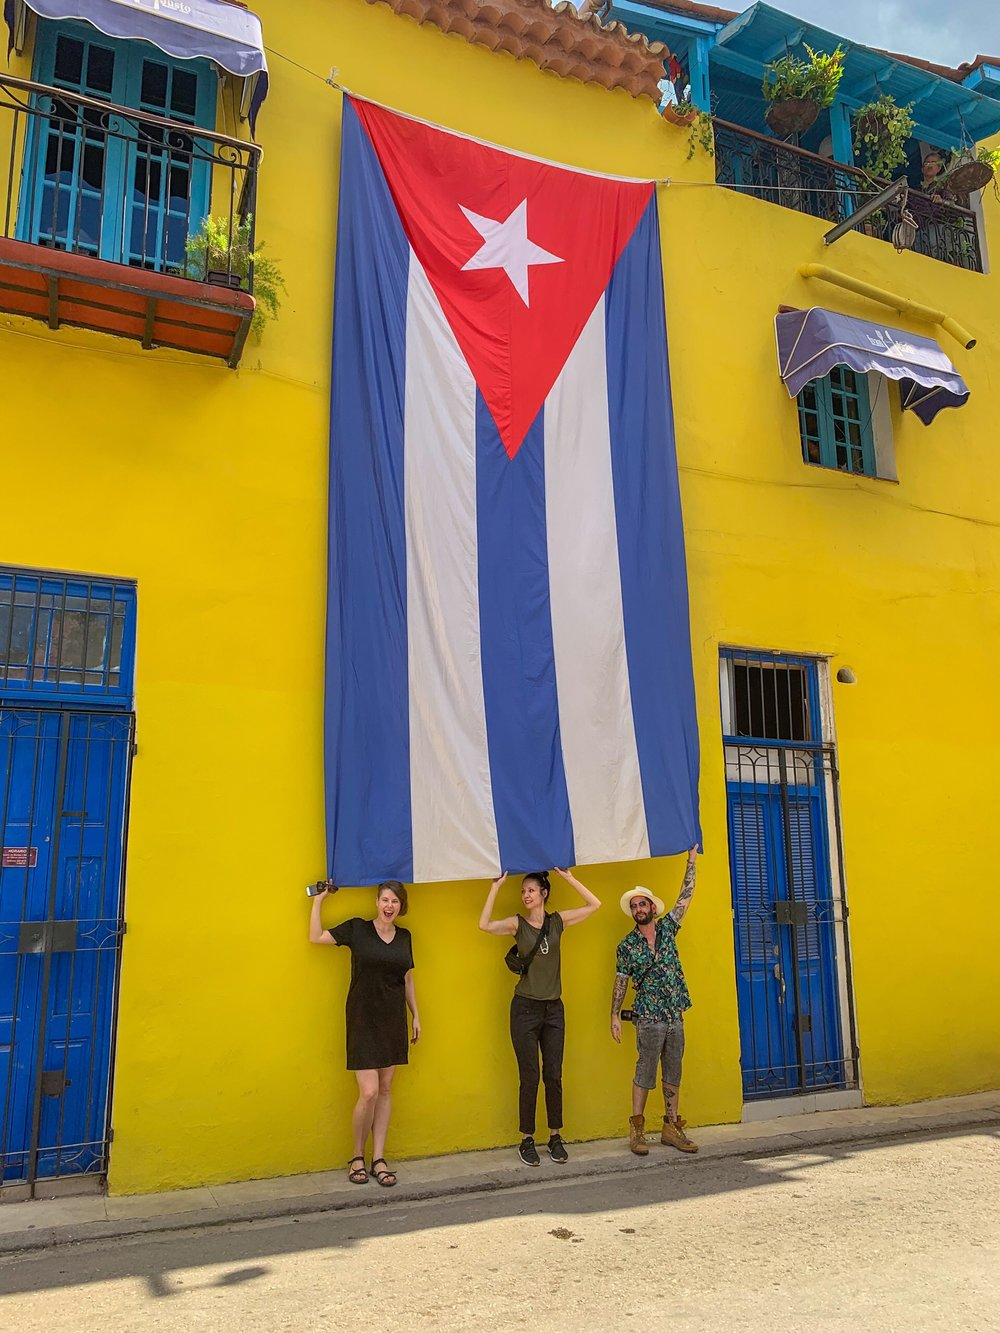 One of Cuba's many flags